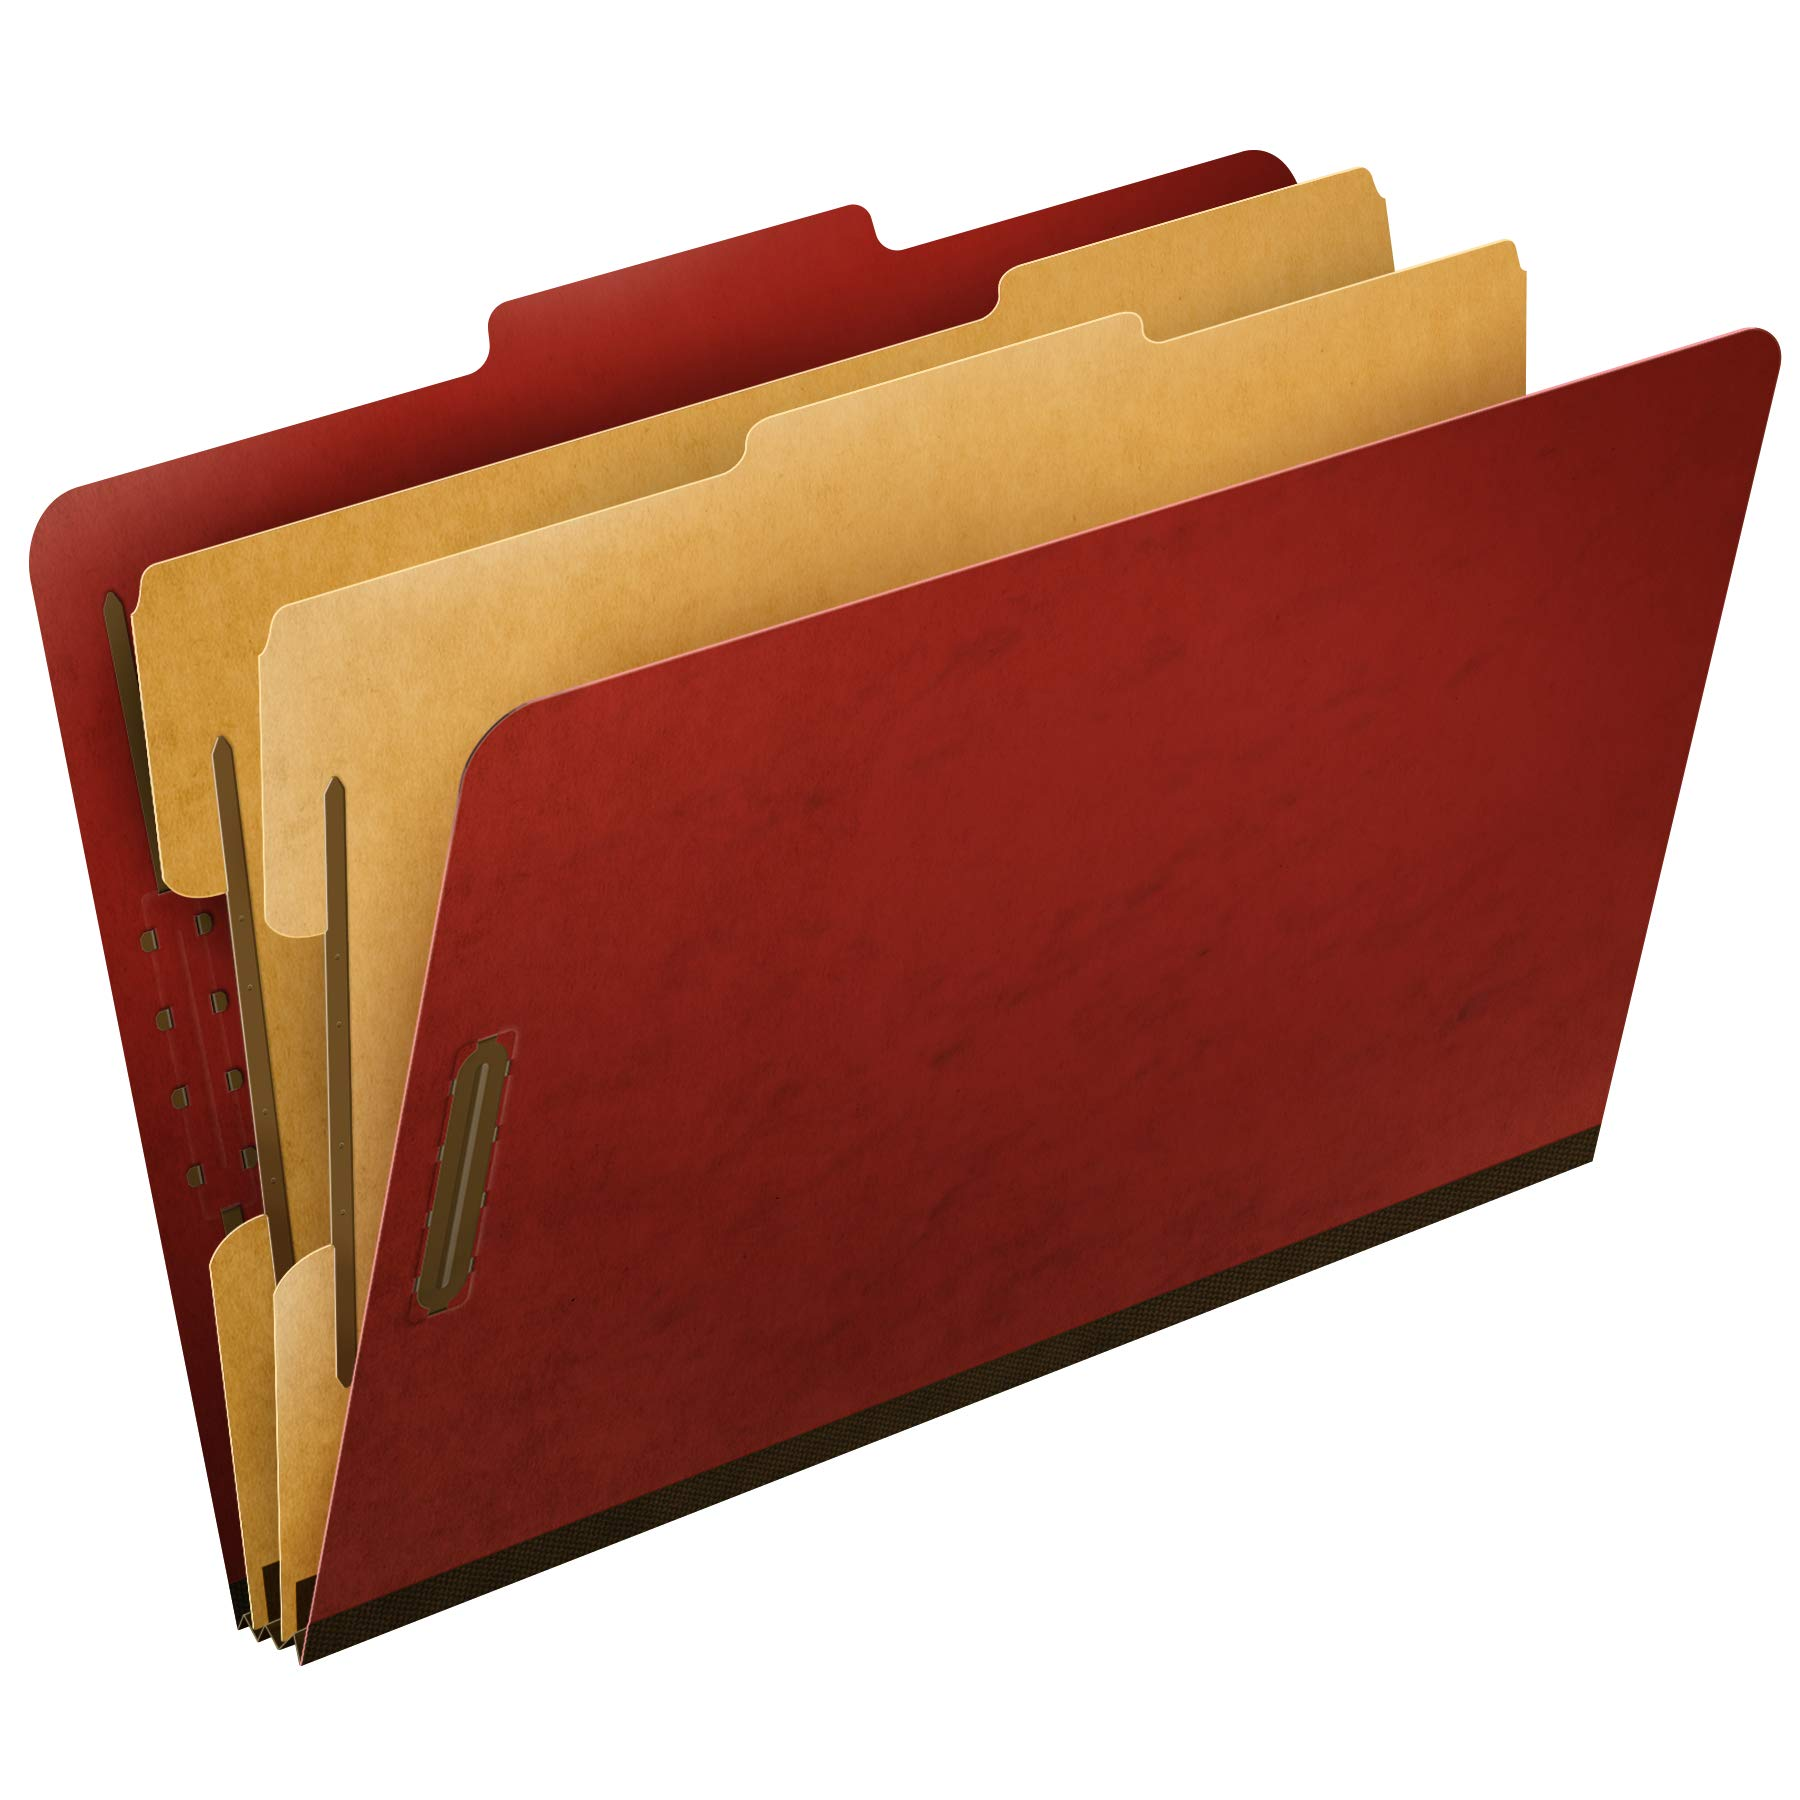 Pendaflex Top-Tab Pressboard Classification Folders, 2/5 Cut, Legal Size, Brick Red, 10 per Box (2257R) by Pendaflex